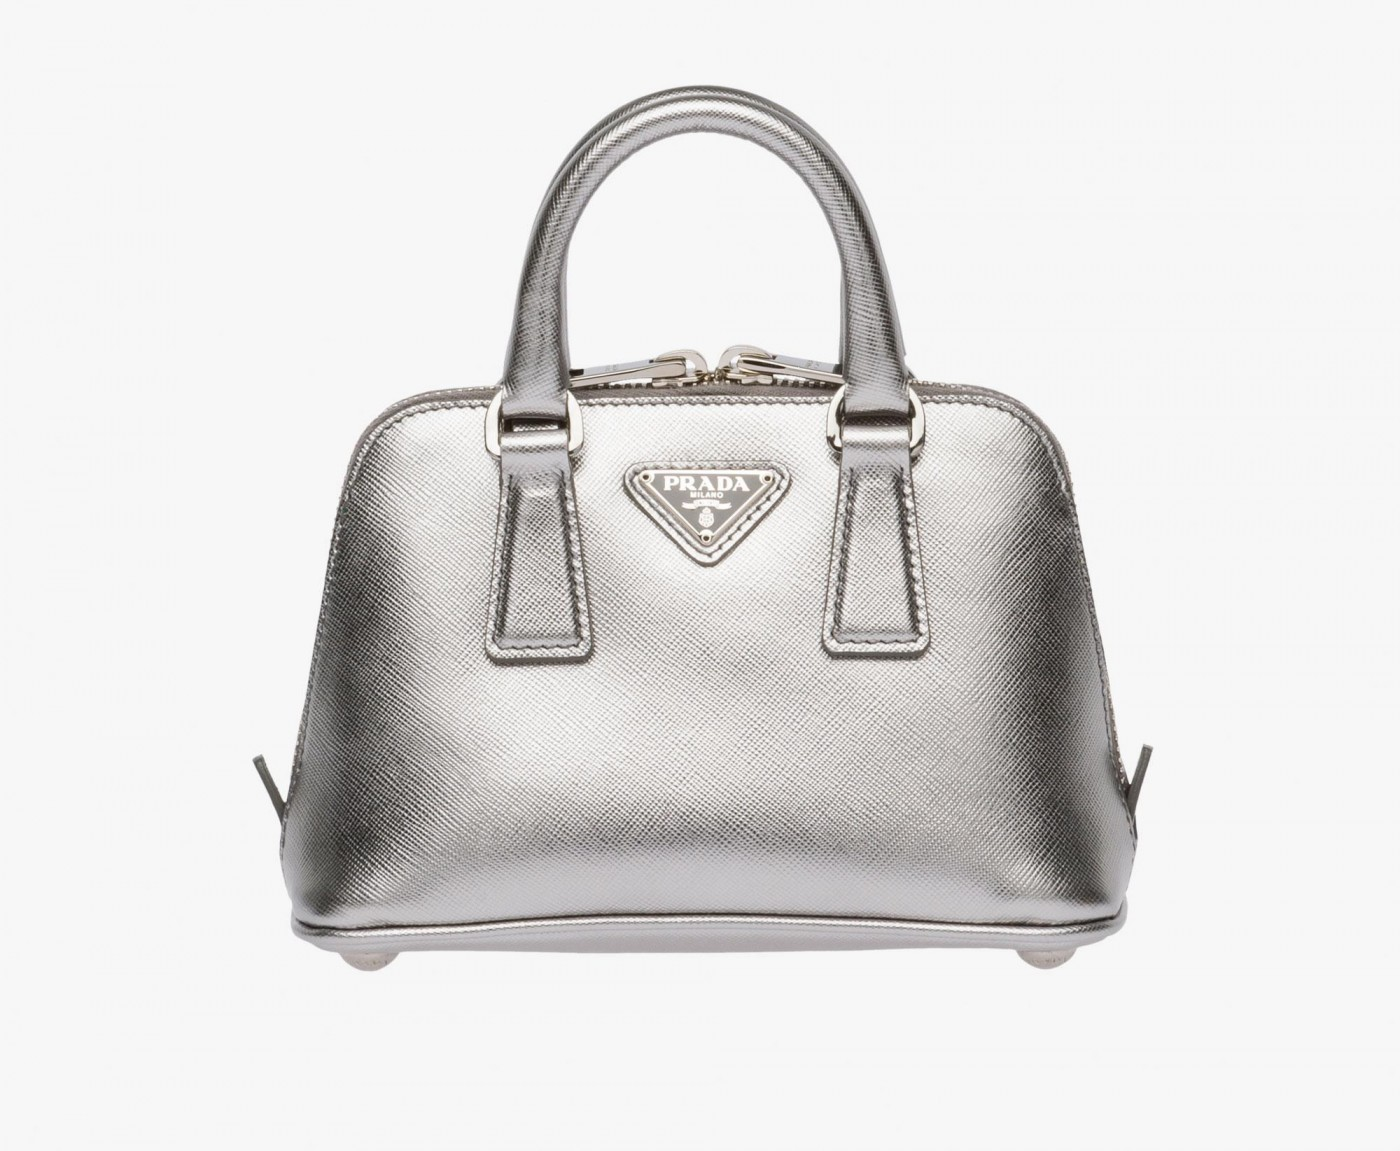 Prada Saffiano Leather Mini-bag - EDITED a7c7ffd8ad2e5